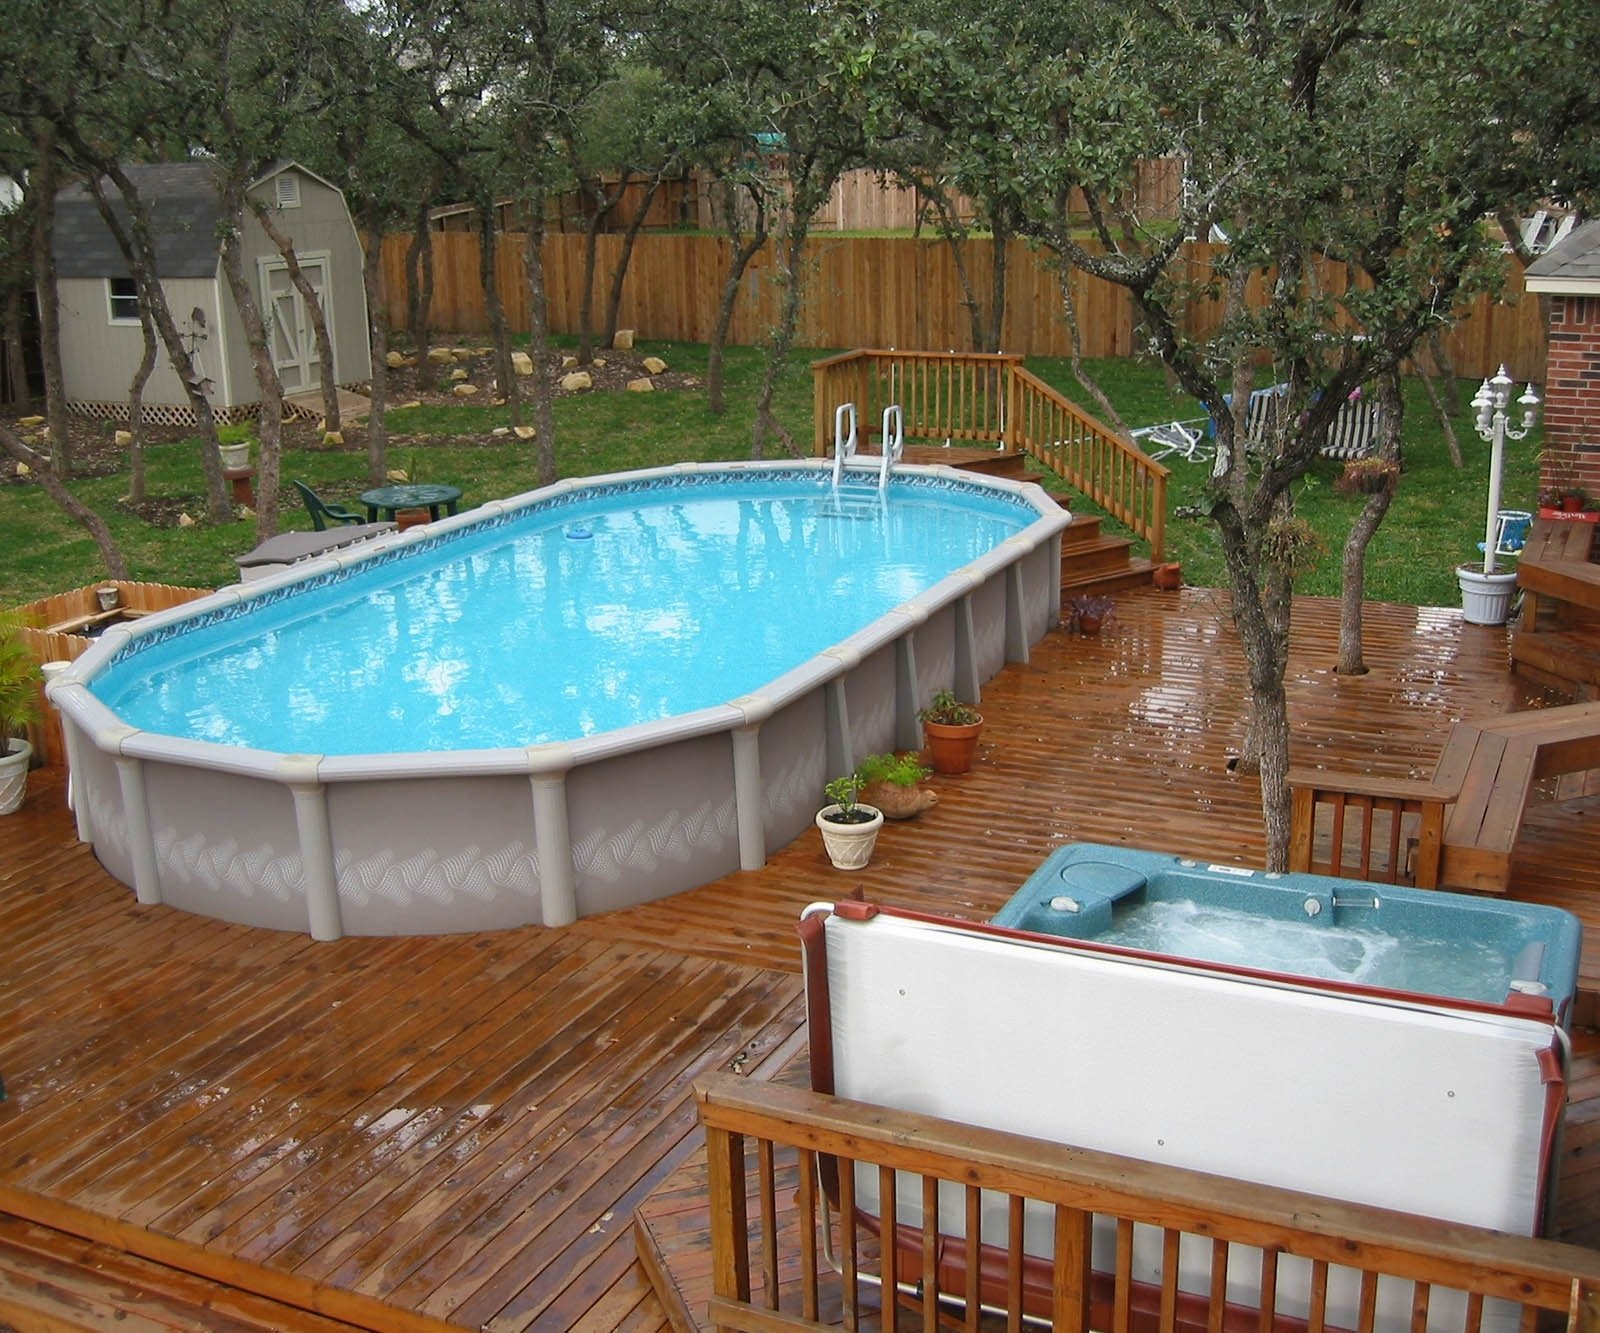 10 Stylish Pool Deck Ideas Above Ground above ground pool deck decorating ideas above ground pool deck